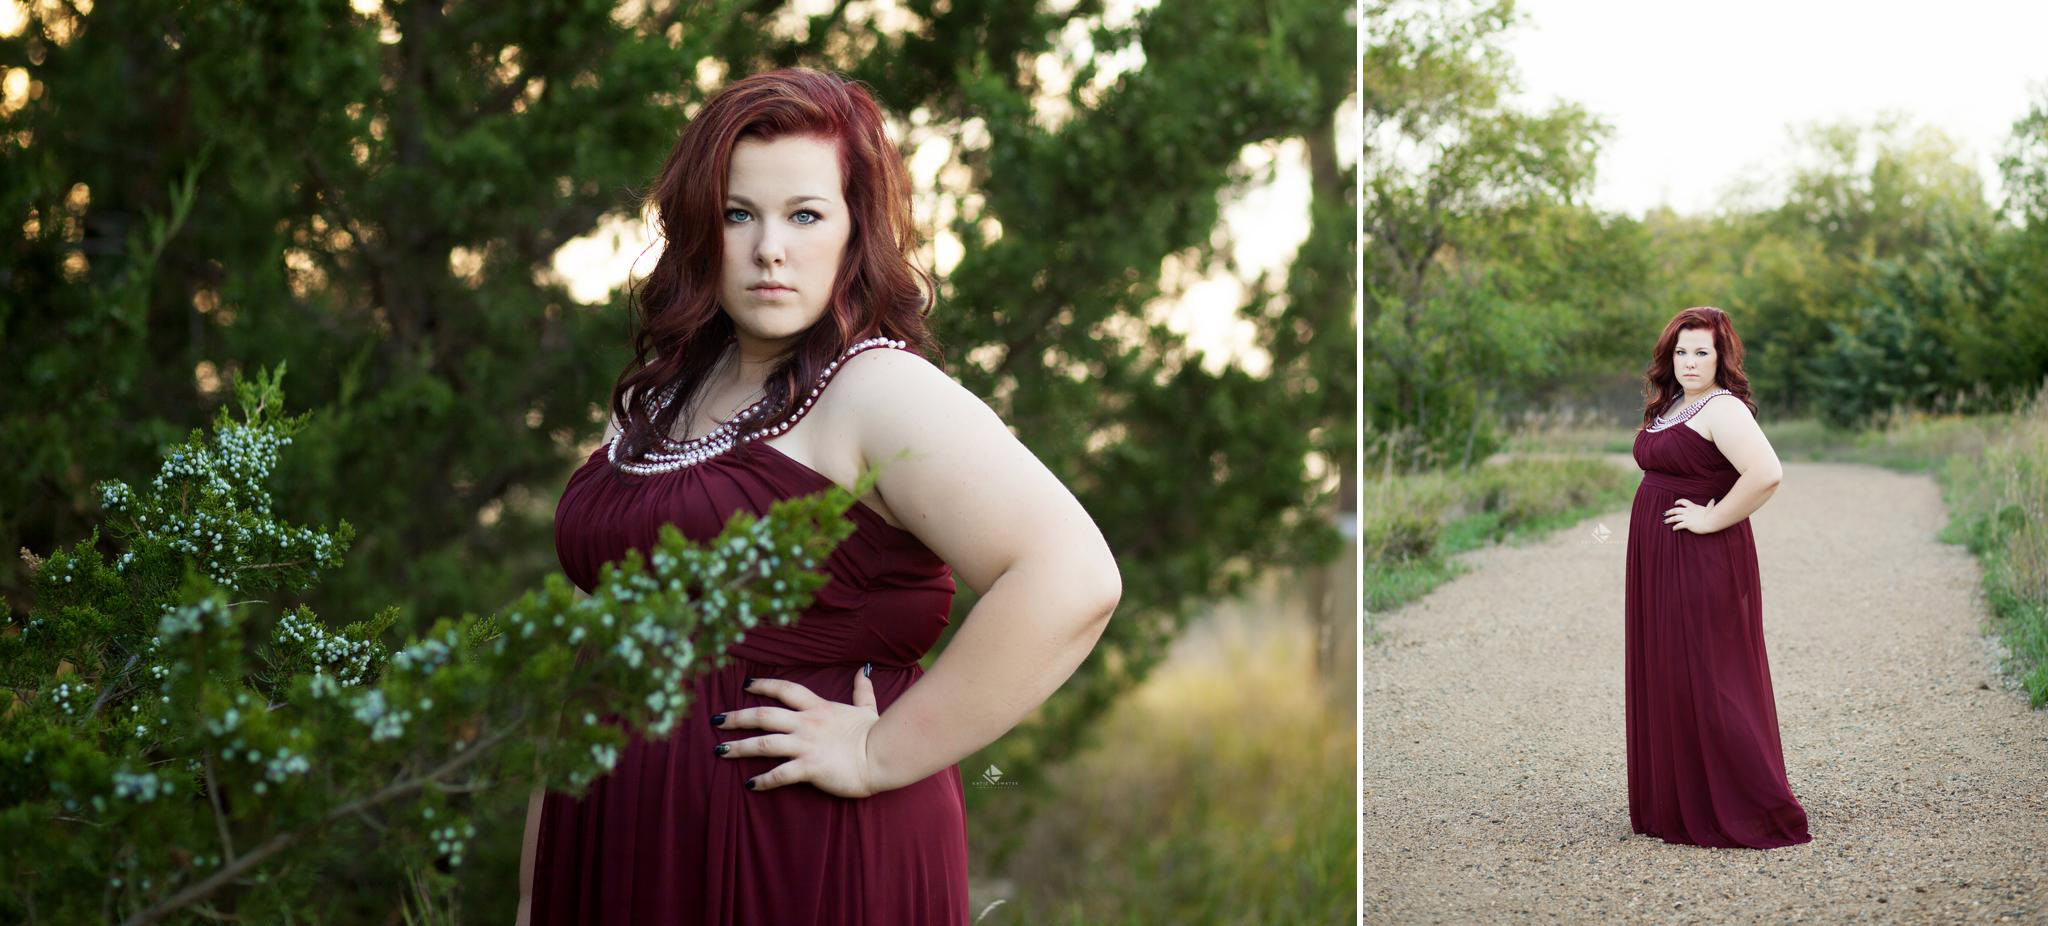 South Dakota Senior Pictures | Prom Dress senior Pictures by Katie Swatek Photography | Country Senior Pictures by Katie Swatek Photography